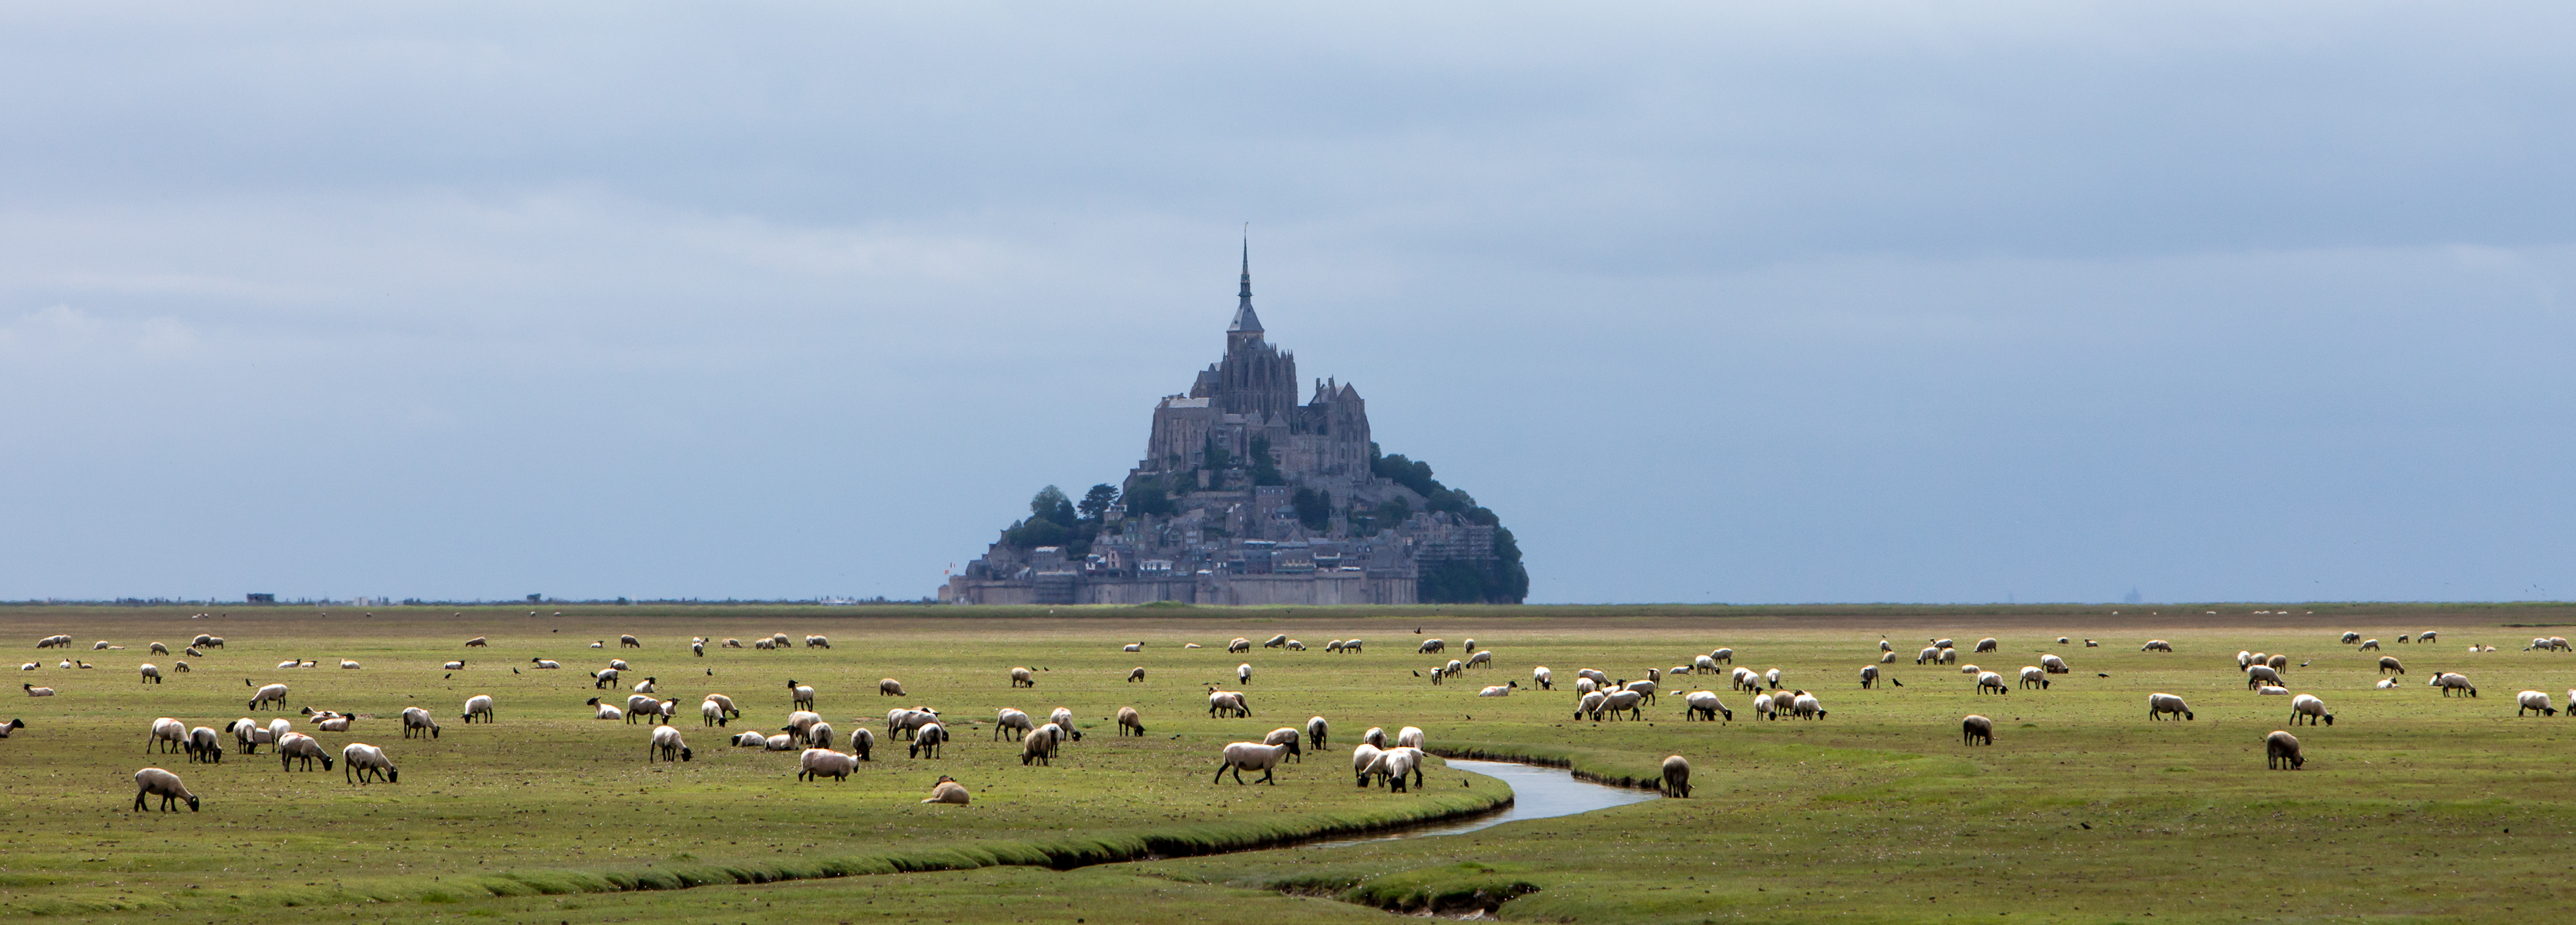 europe-france-mont-saint-michel